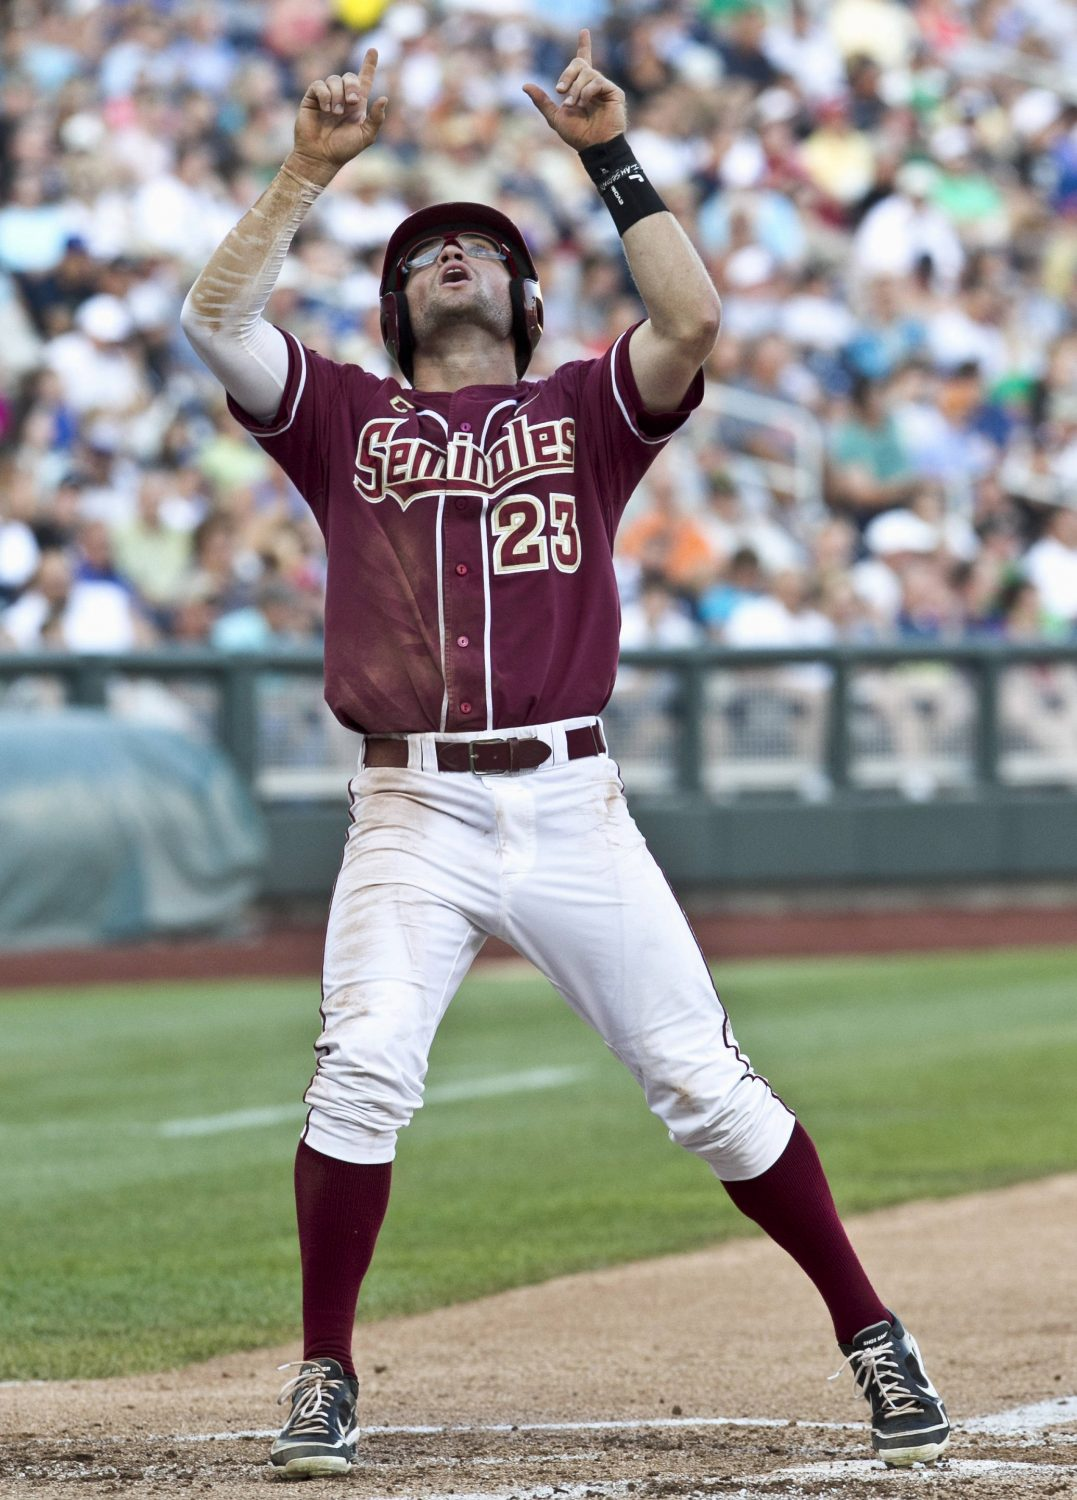 Florida State's James Ramsey points skyward at home plate as he scores against UCLA after Justin Gonzalez was walked with bases loaded in the first inning. (AP Photo/Nati Harnik)